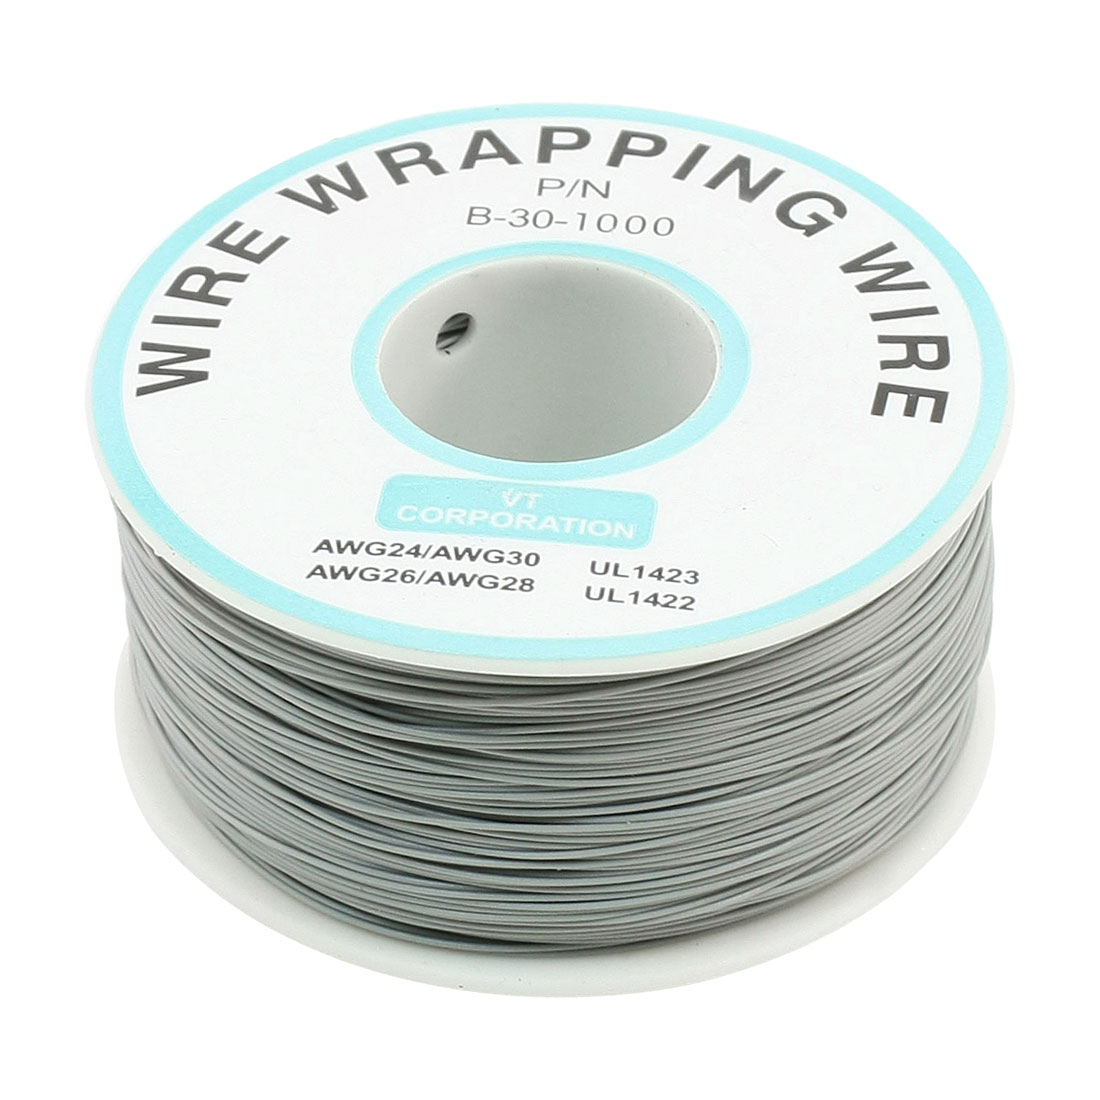 PCB Solder Flexible P/N B-30-1000 30AWG Wire Cable Wrapping Wrap 200M Gray